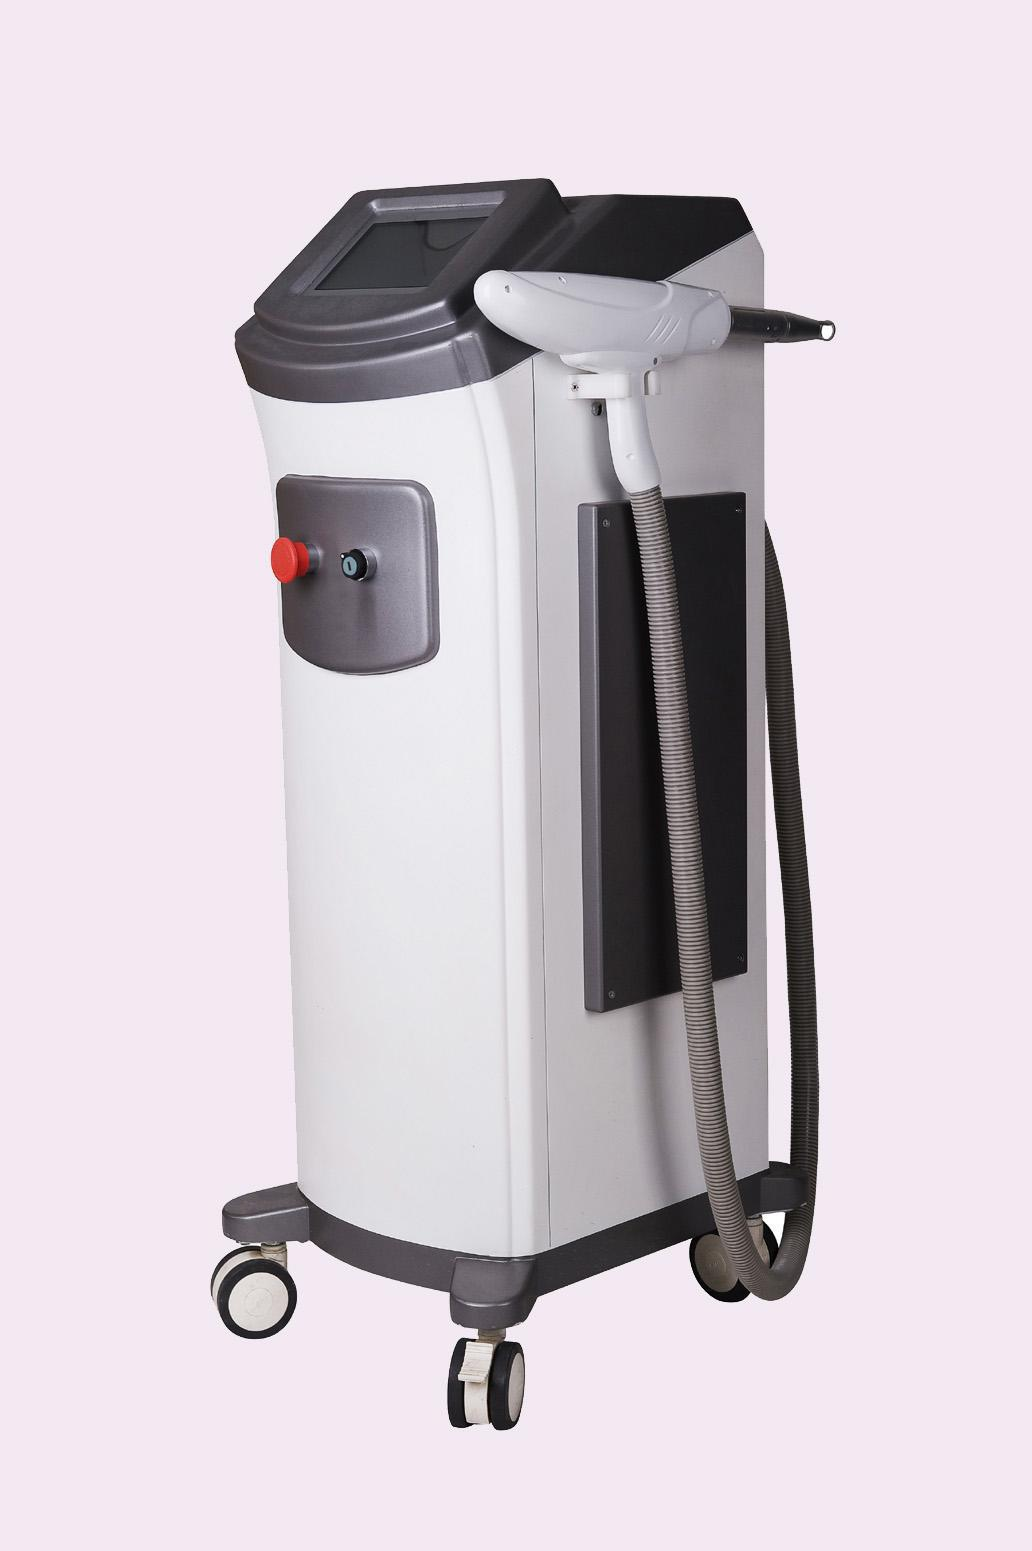 Long Pulse Nd Yag Laser Hair Removal System 1064nm ...